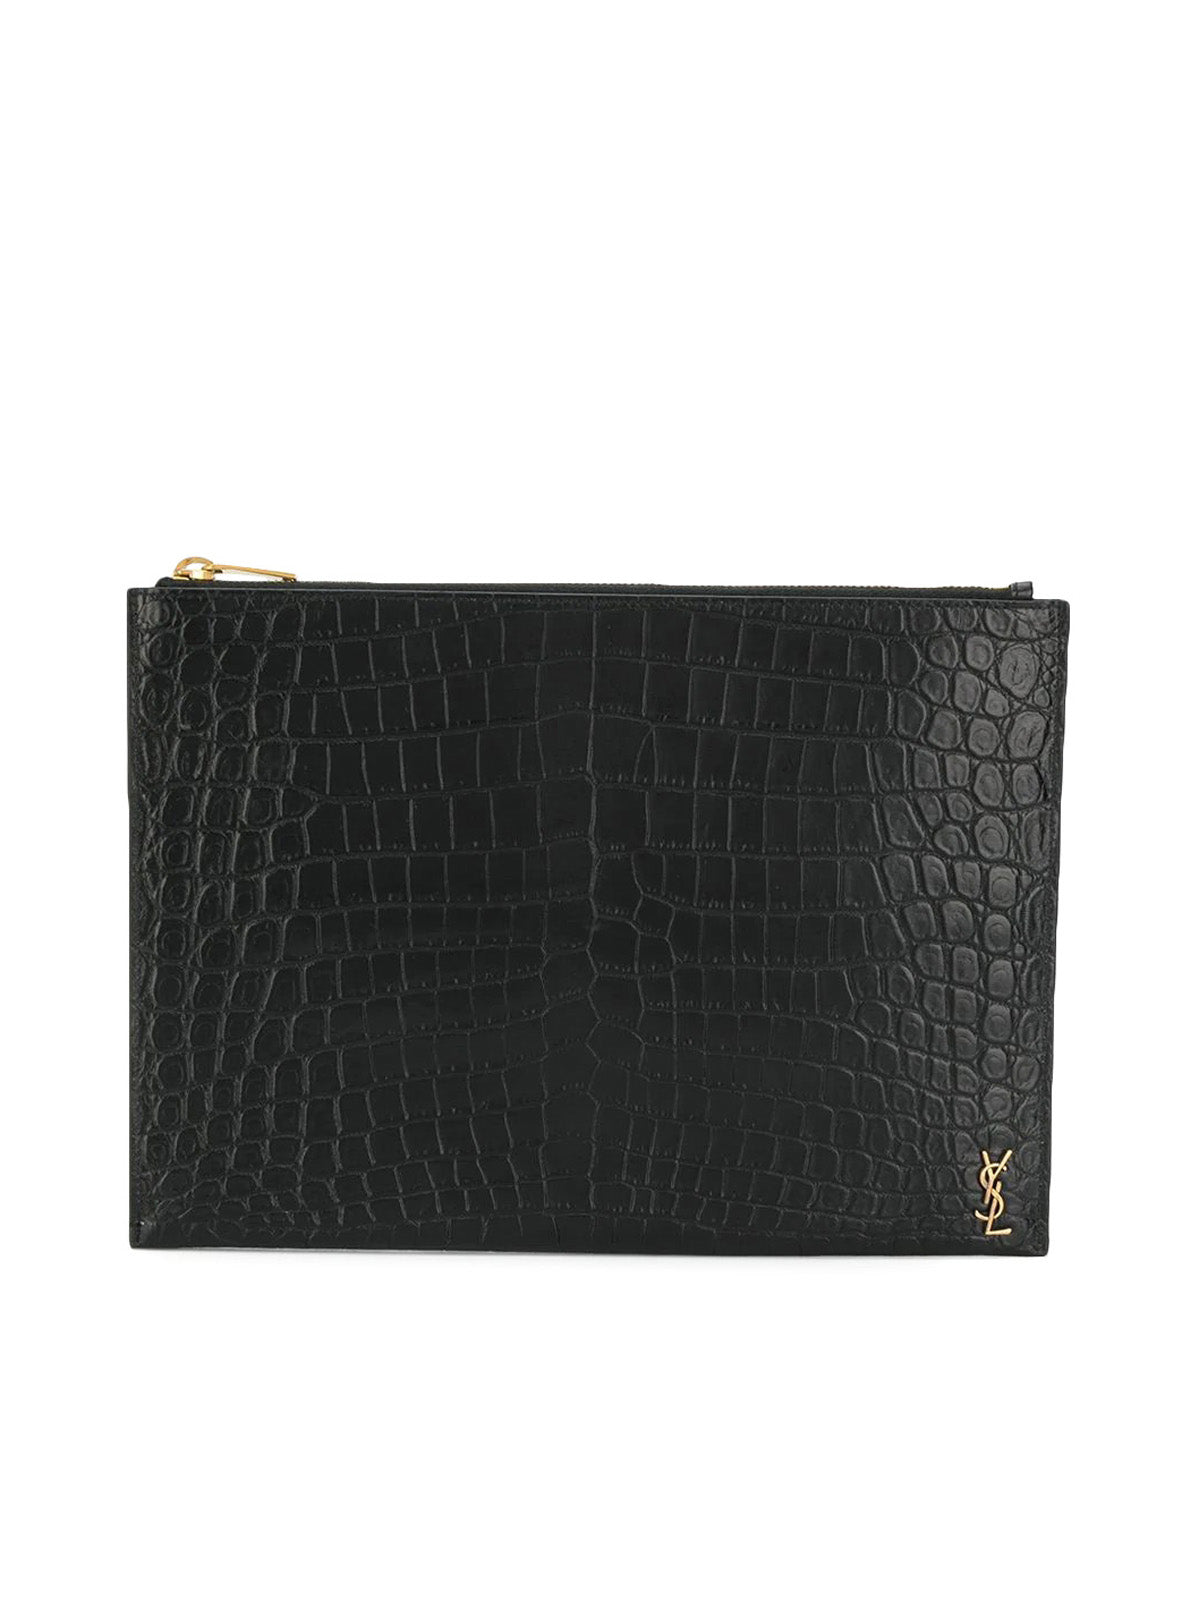 Monogram embossed pouch